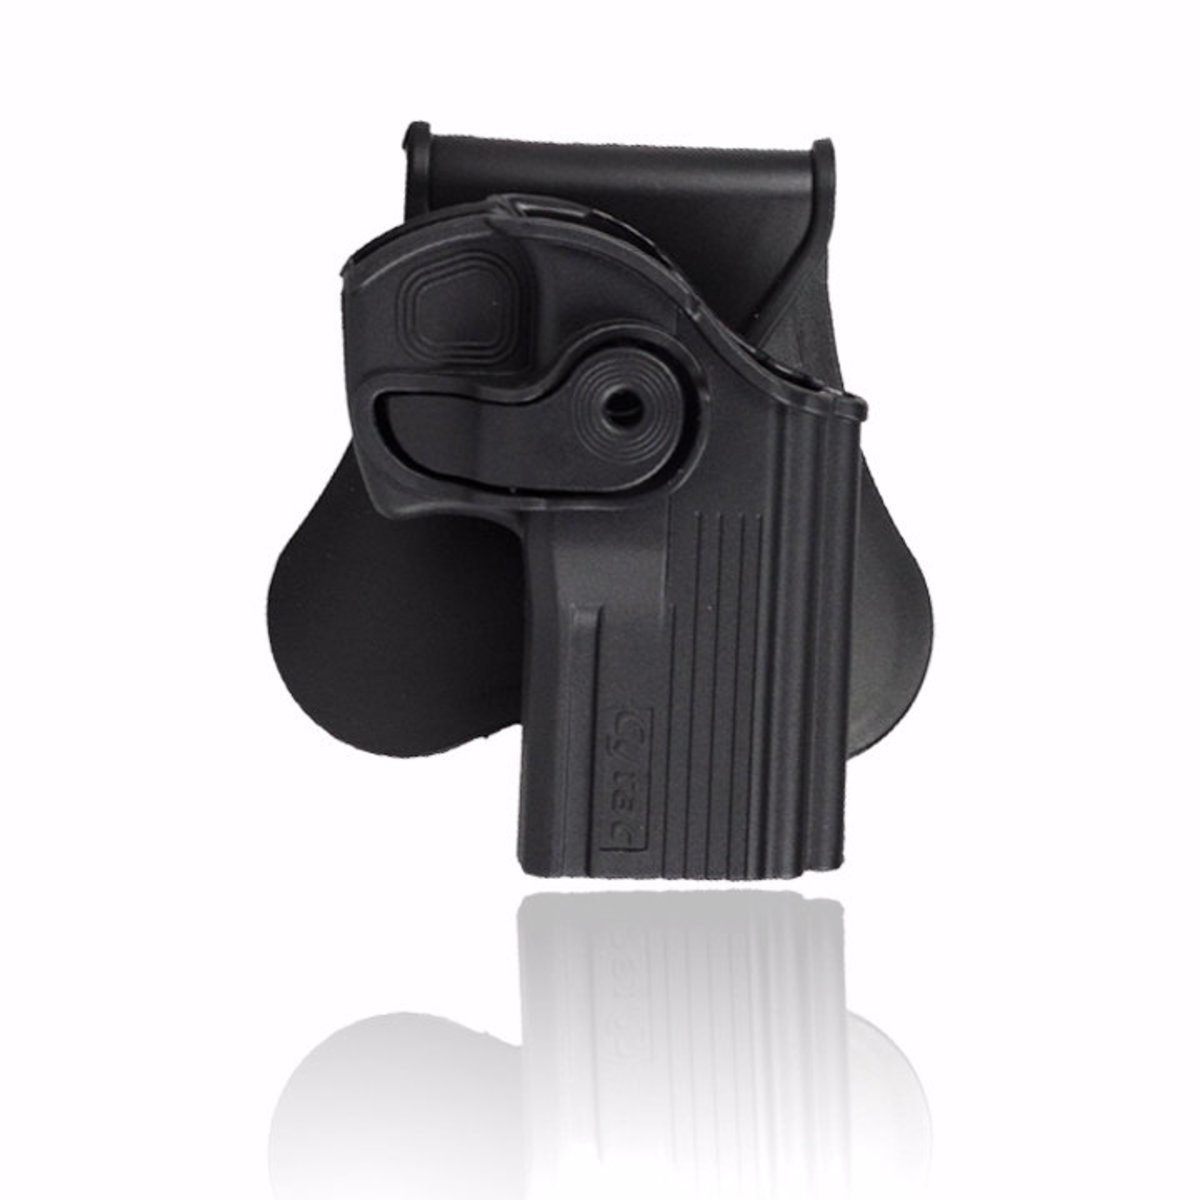 View larger image of Cytac OWB Holster - Fits Taurus 24/7 & Taurus 24/7-OSS Pistol